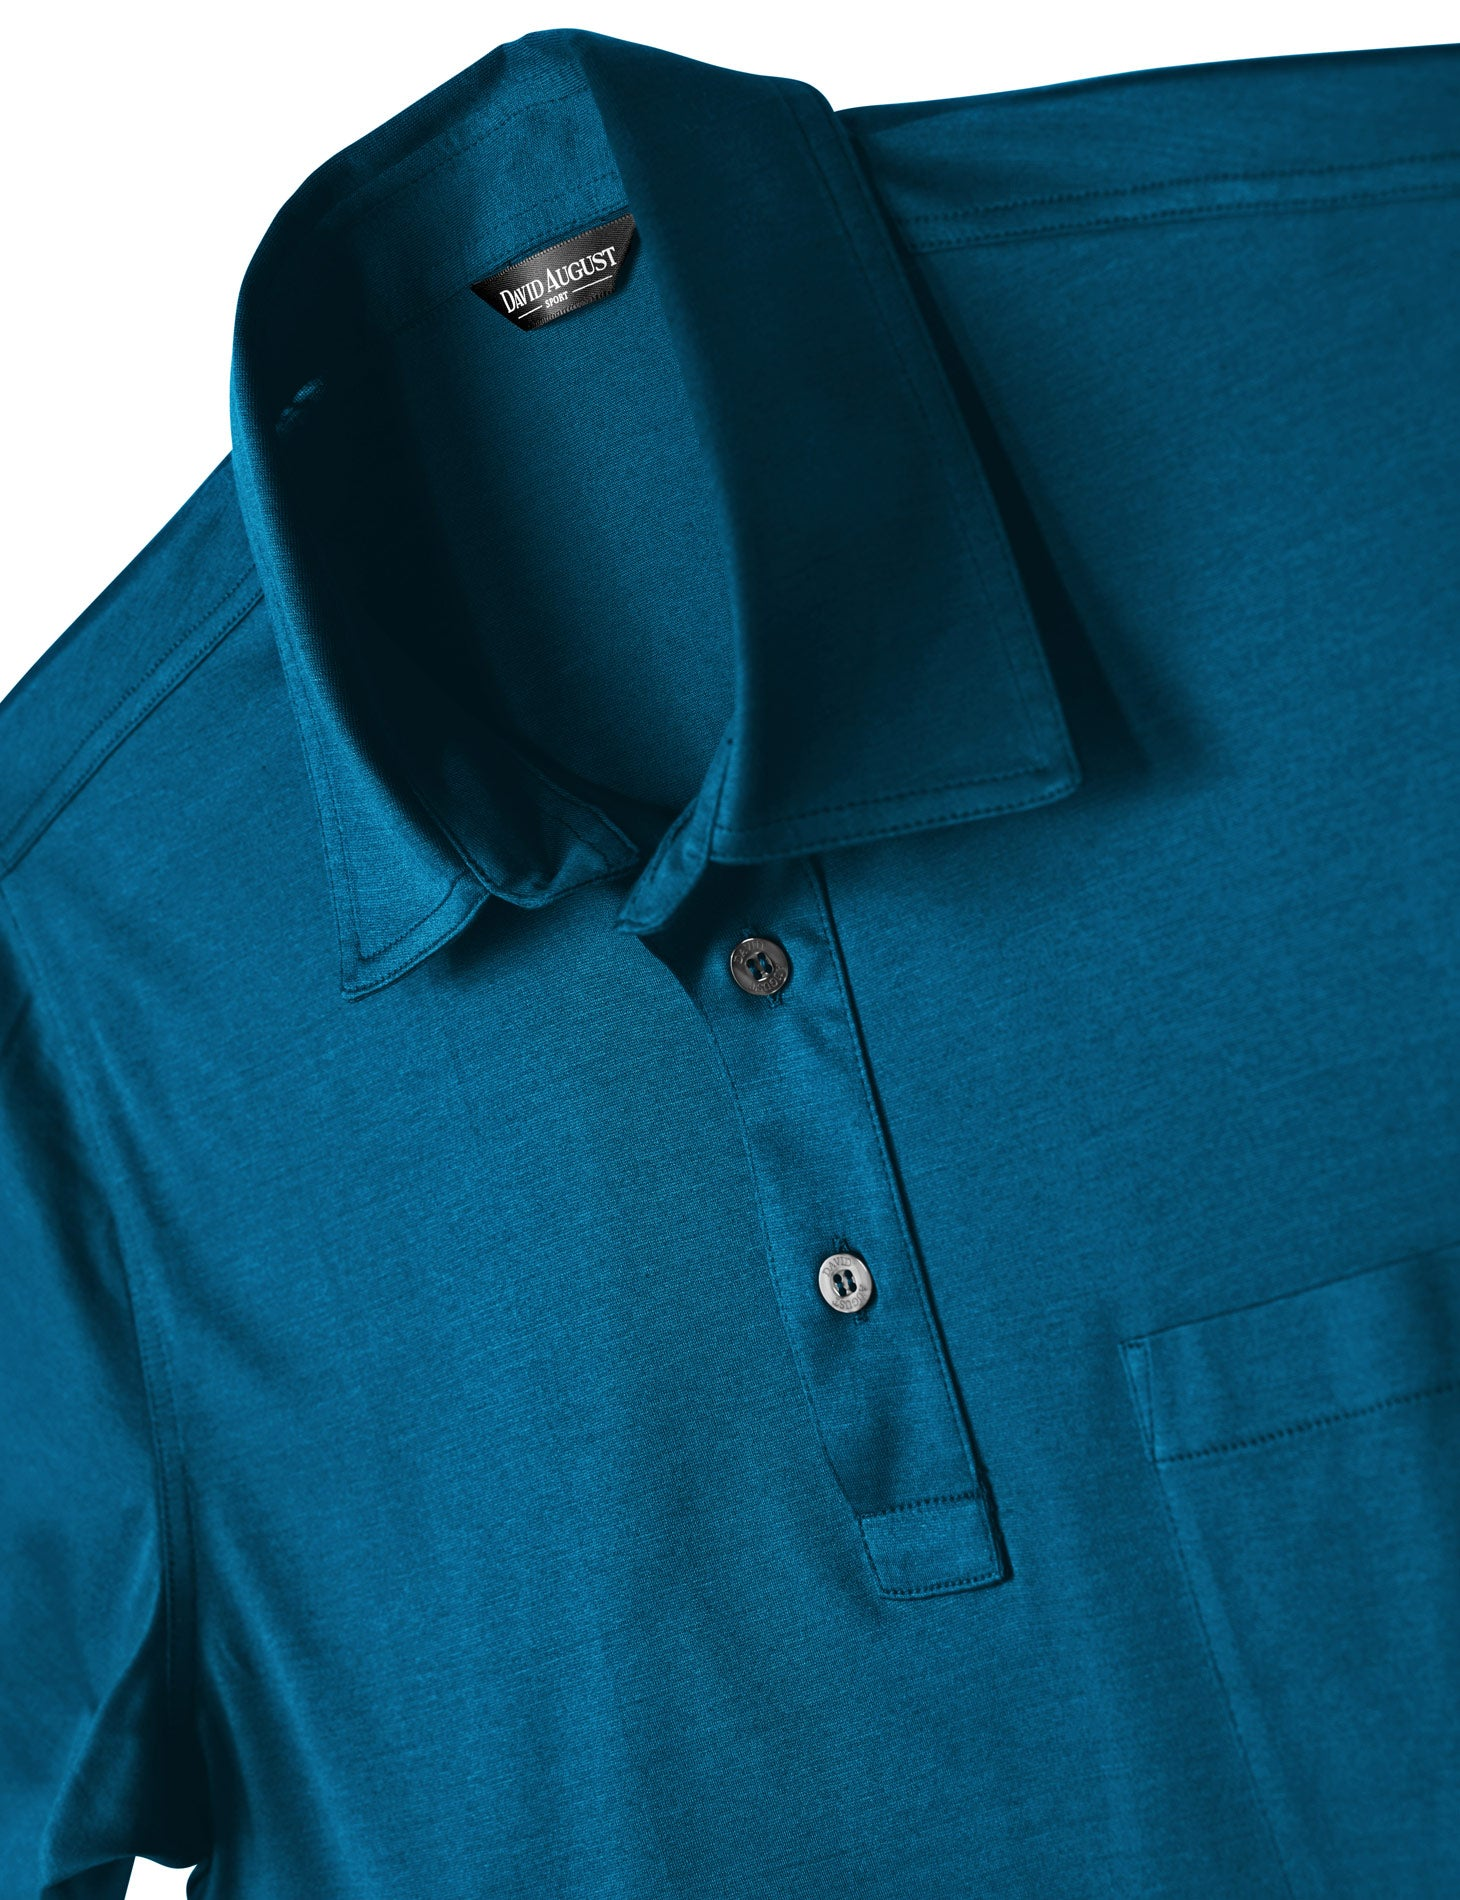 David August Mercerized Cotton Polo Teal